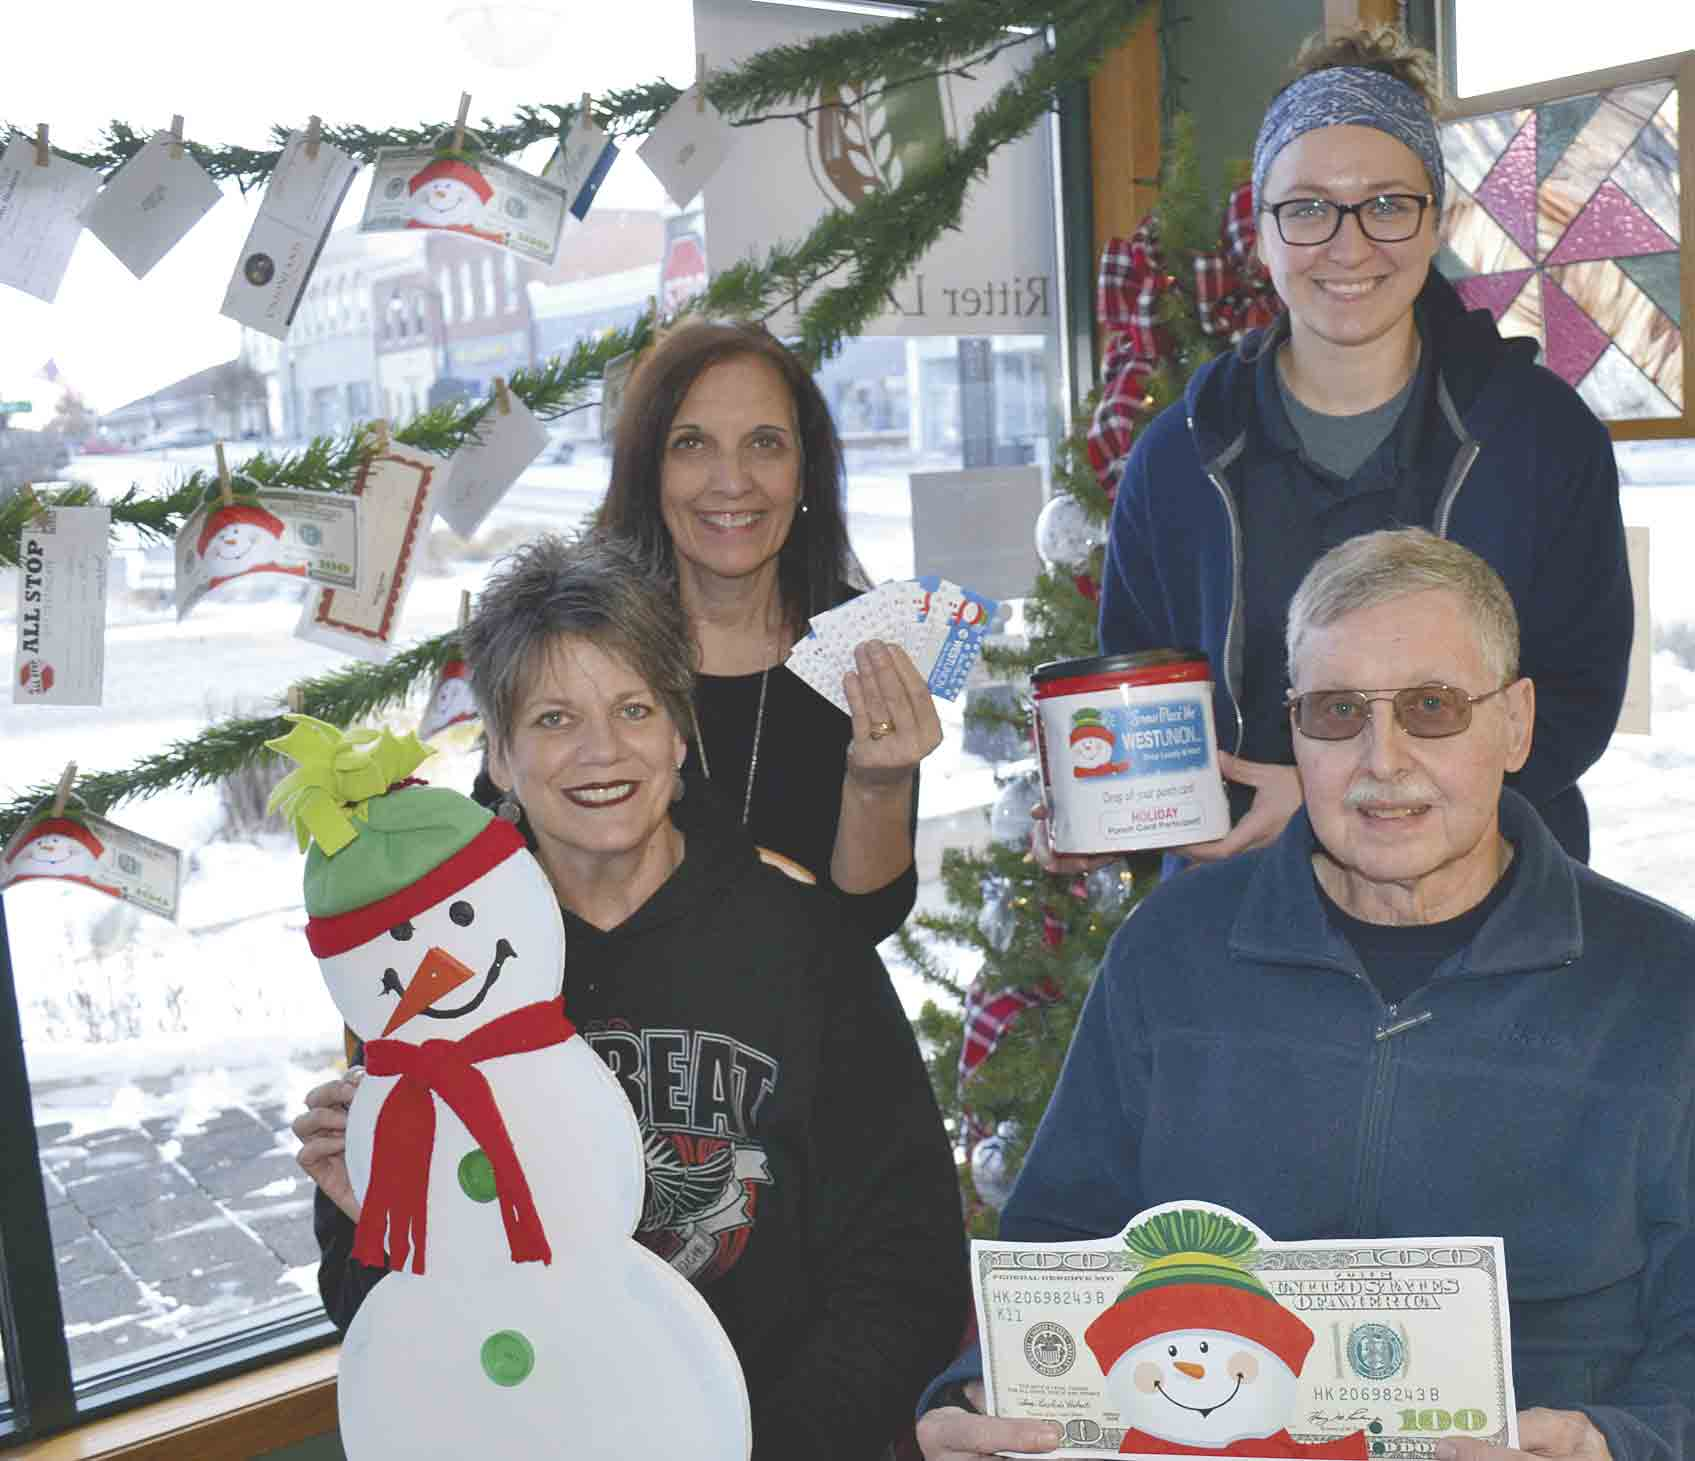 Area shoppers are invited to join the jovial snowman as well as area business owners, including (l-r) Ken Popenhagen, Chelsey Matthias and Kaleb Vagts in taking part in a variety of area promotions as they shop West Union throughout the holiday season for a variety of great deals and fun prizes....